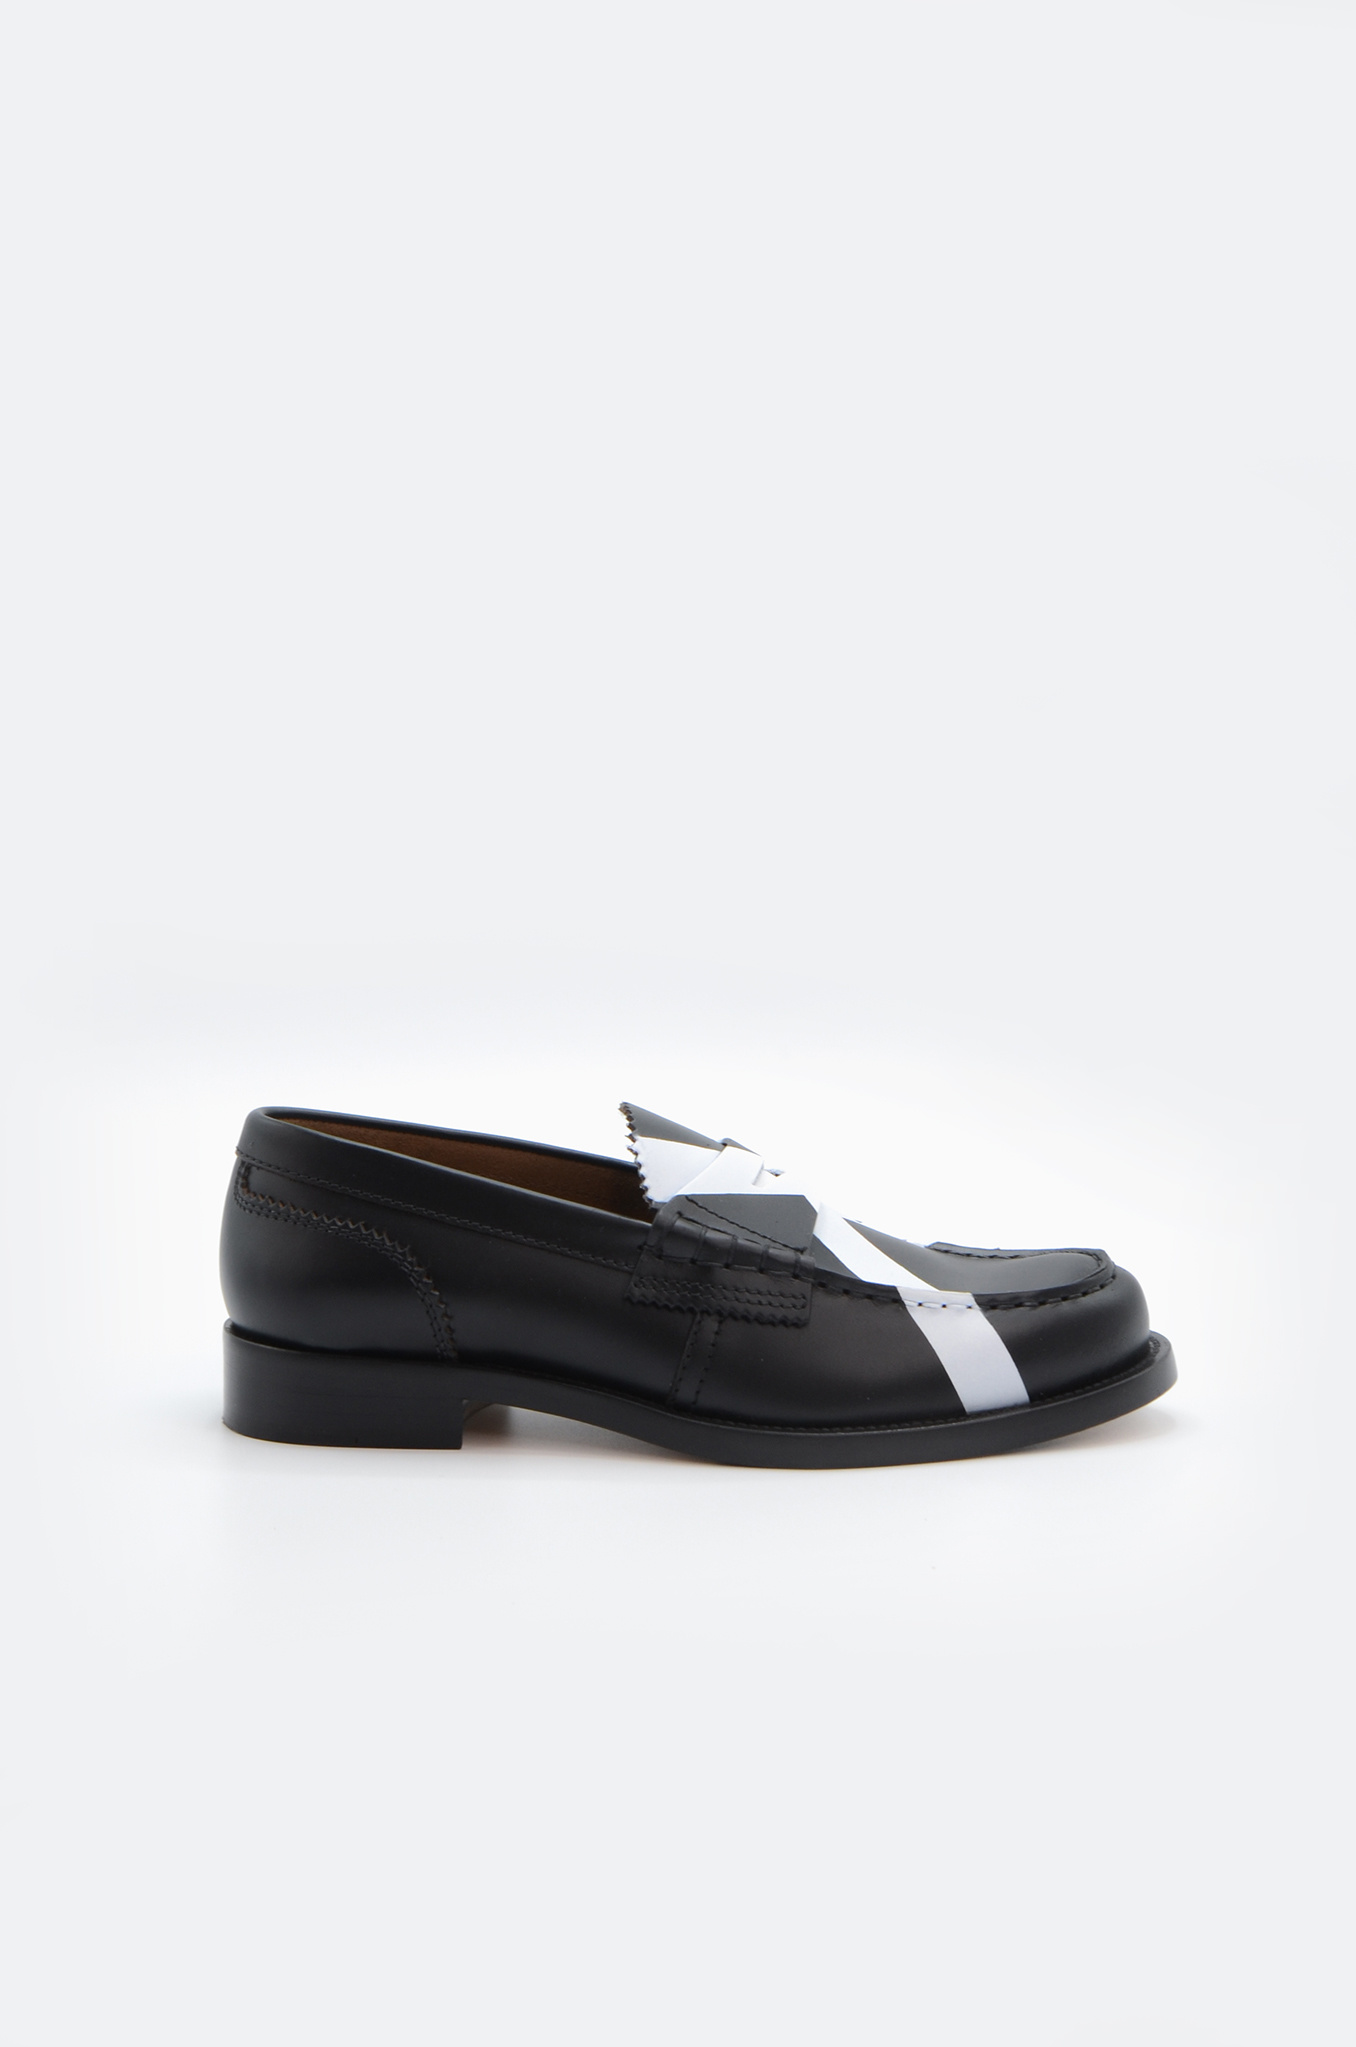 PENNY LOAFER IN BLACK X WHITE-1